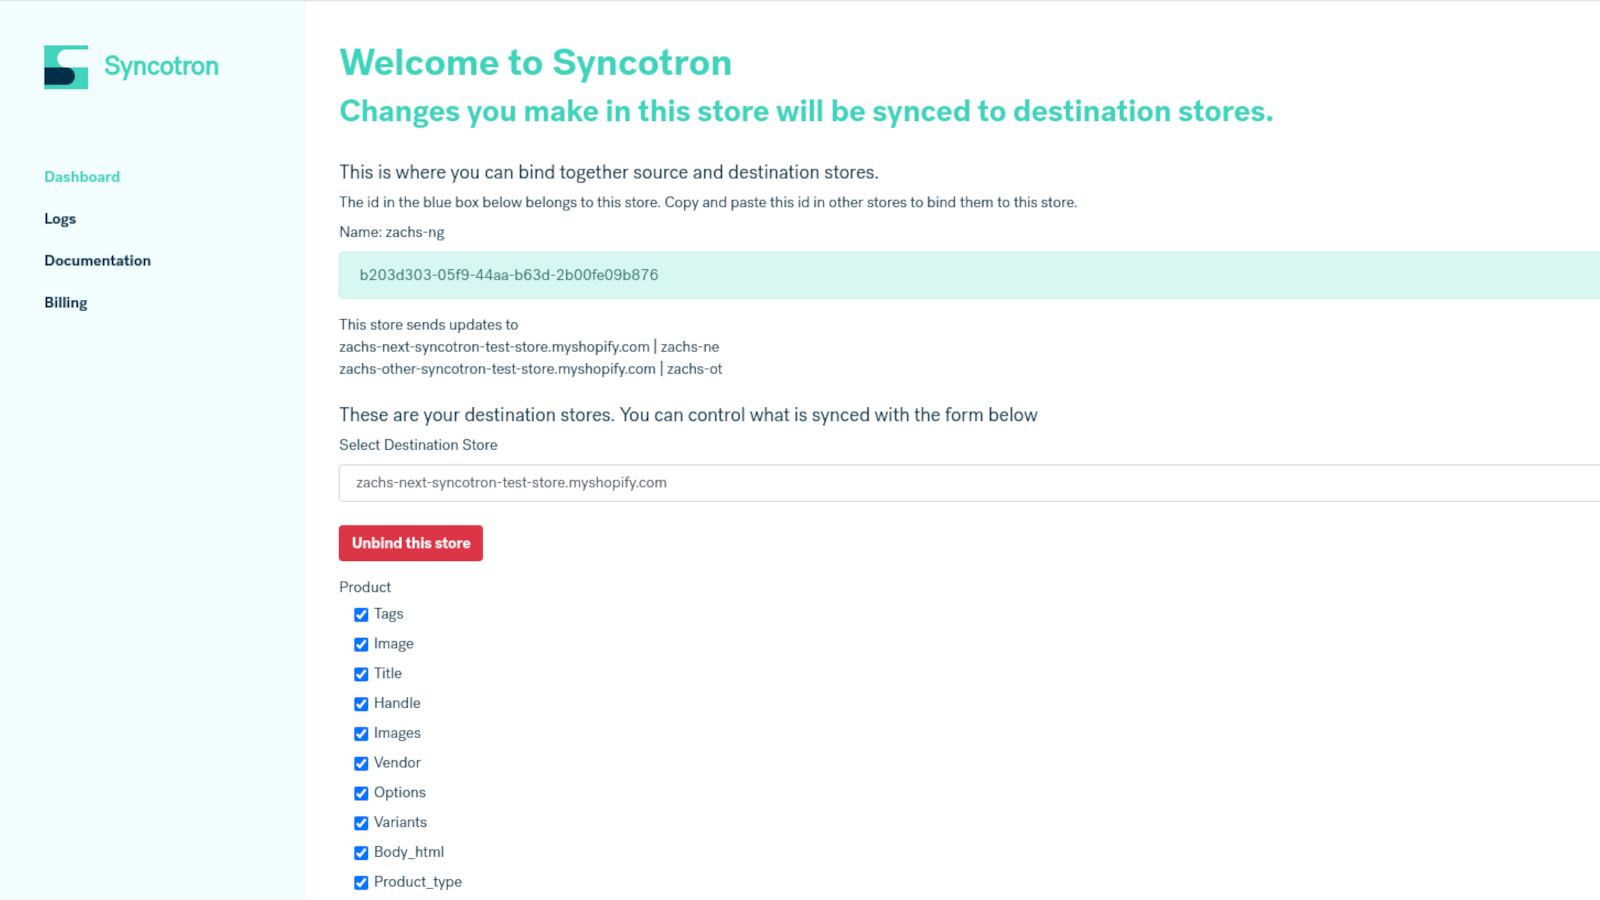 Welcome to Syncotron - granular control over your syncing